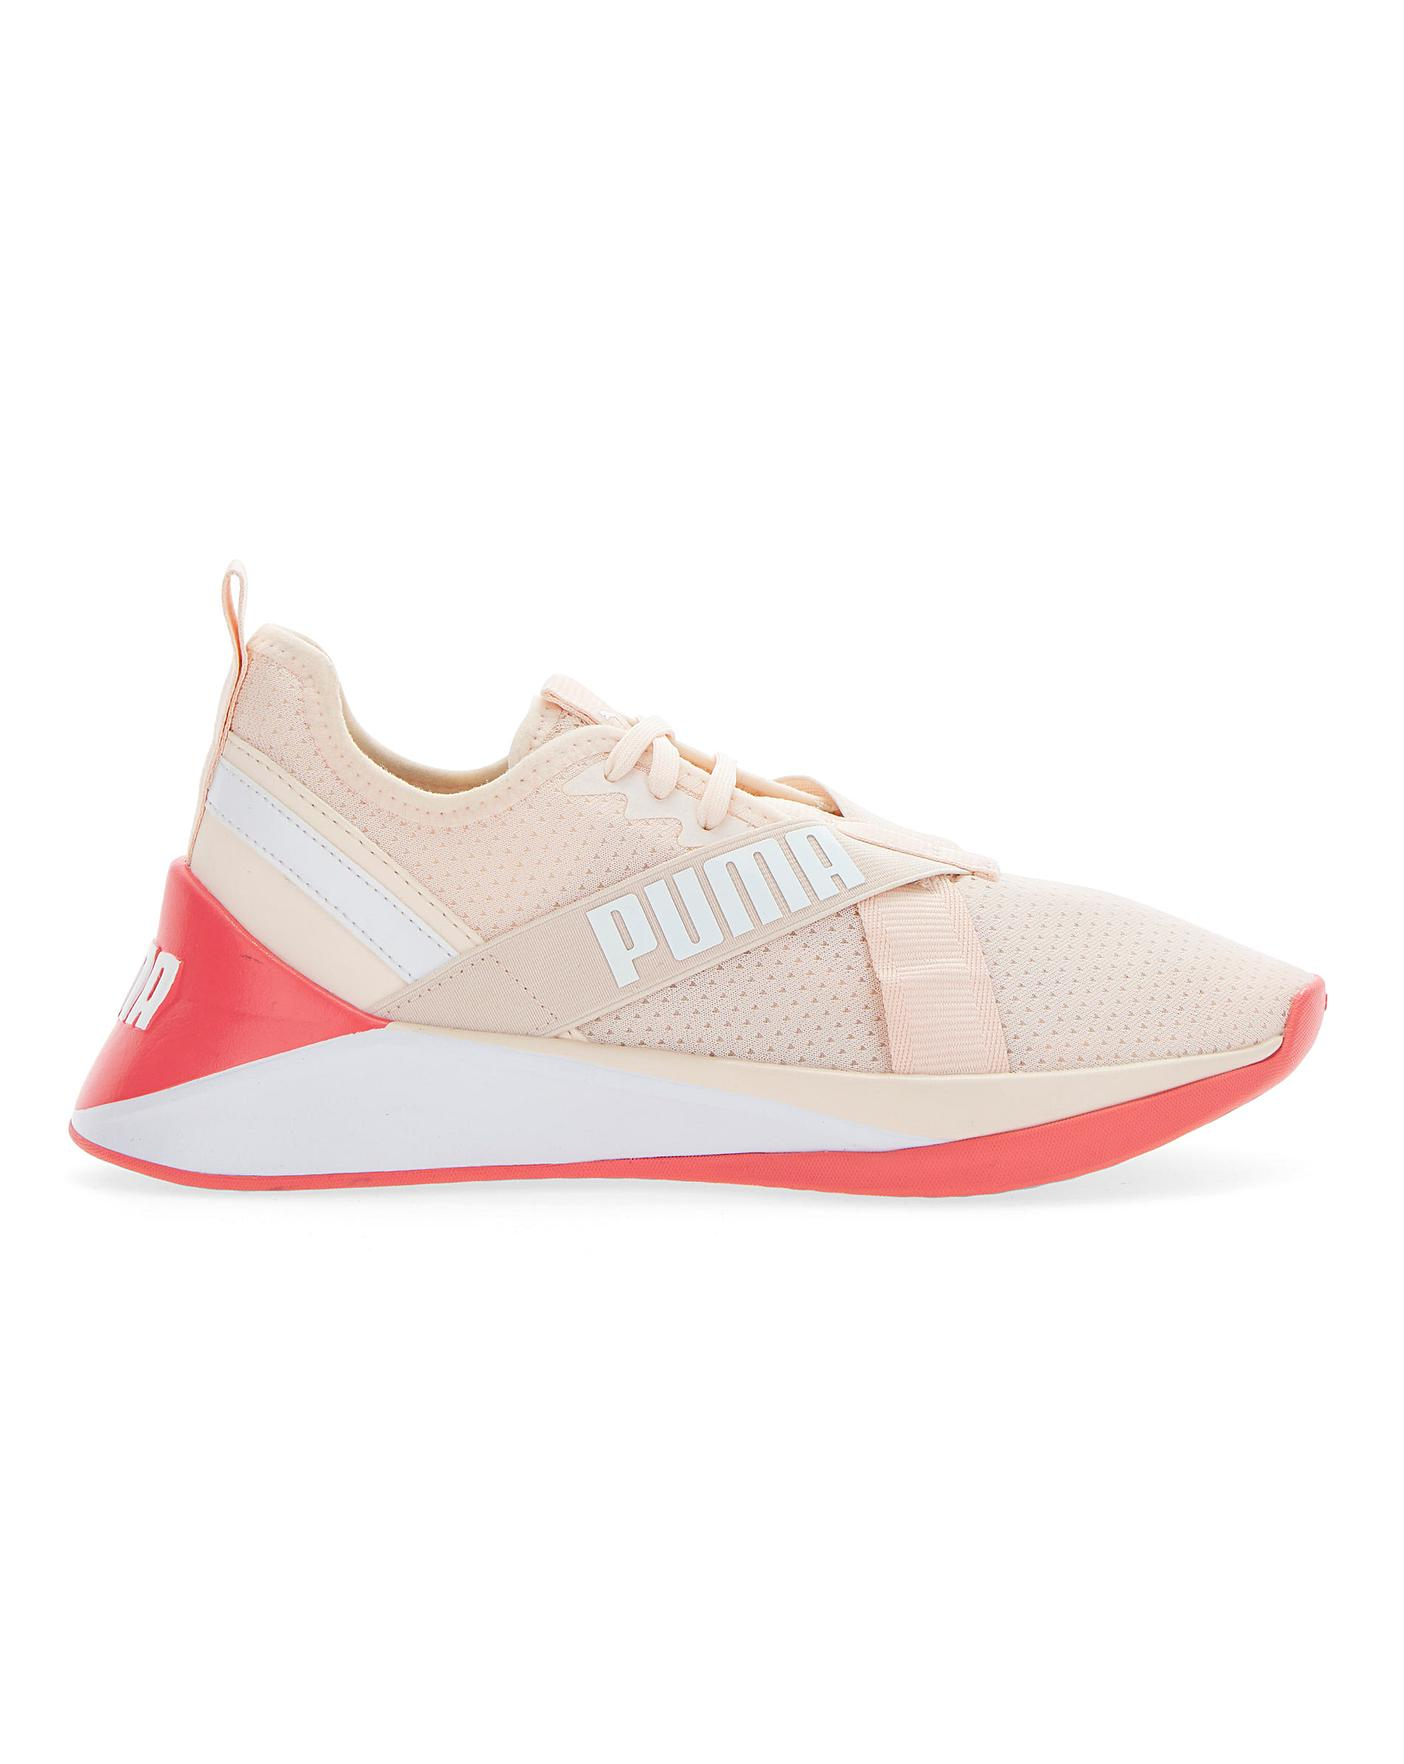 Puma Jaab XT Trainers | Oxendales